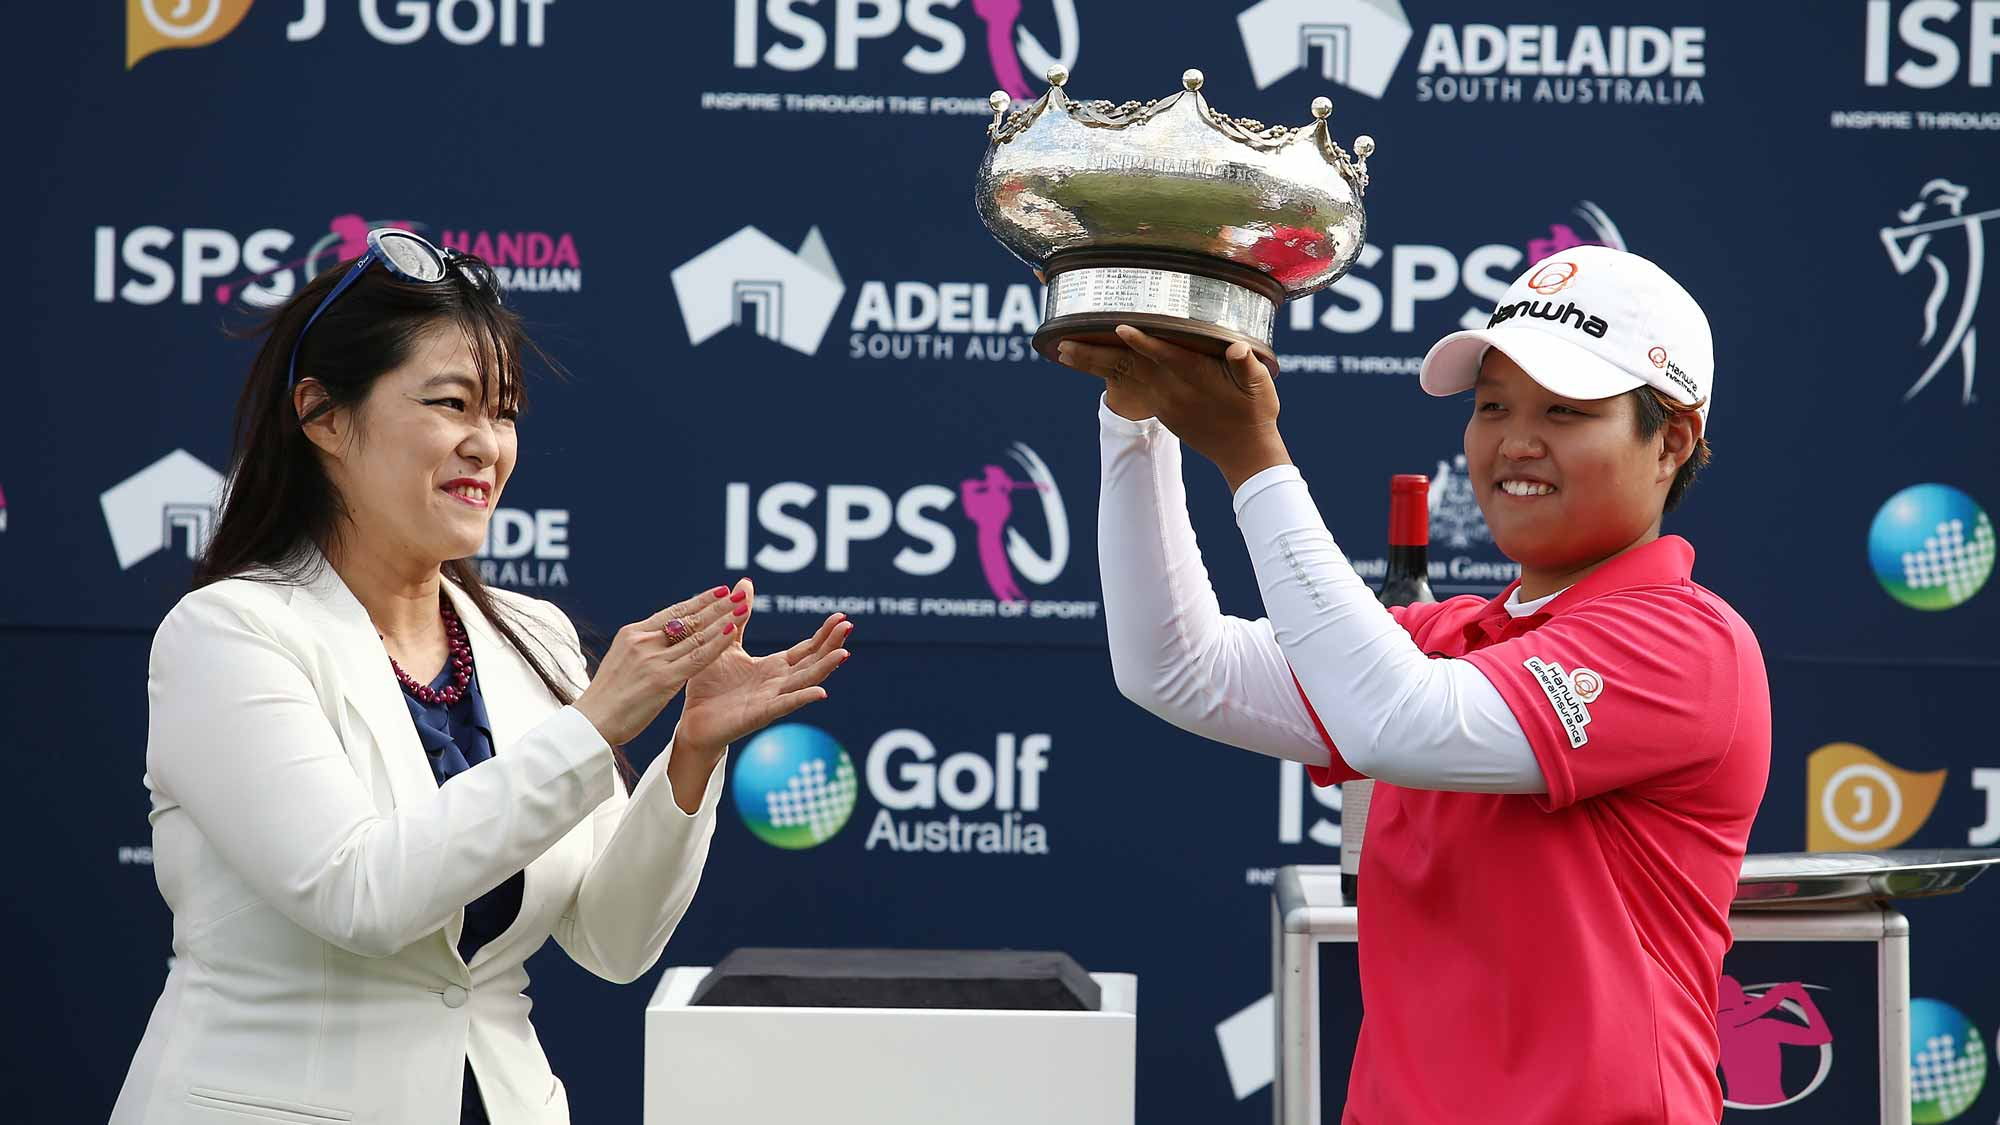 aru Nomura of Japan is presented with the winners trophy by Midori Miyazaki after winning the Women's Australian Open